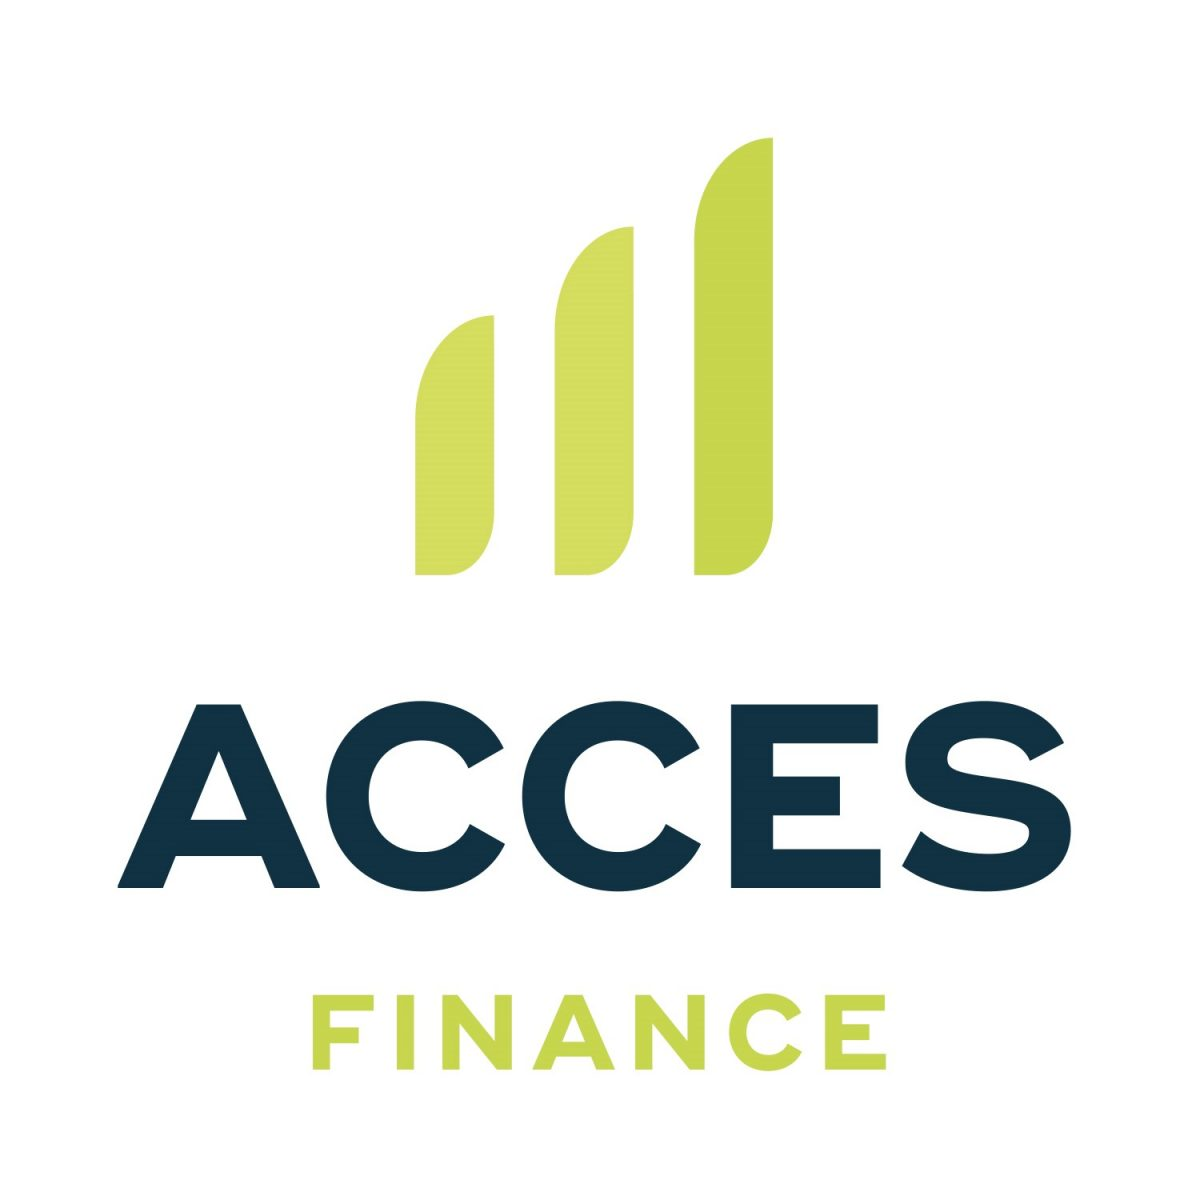 acces-finance